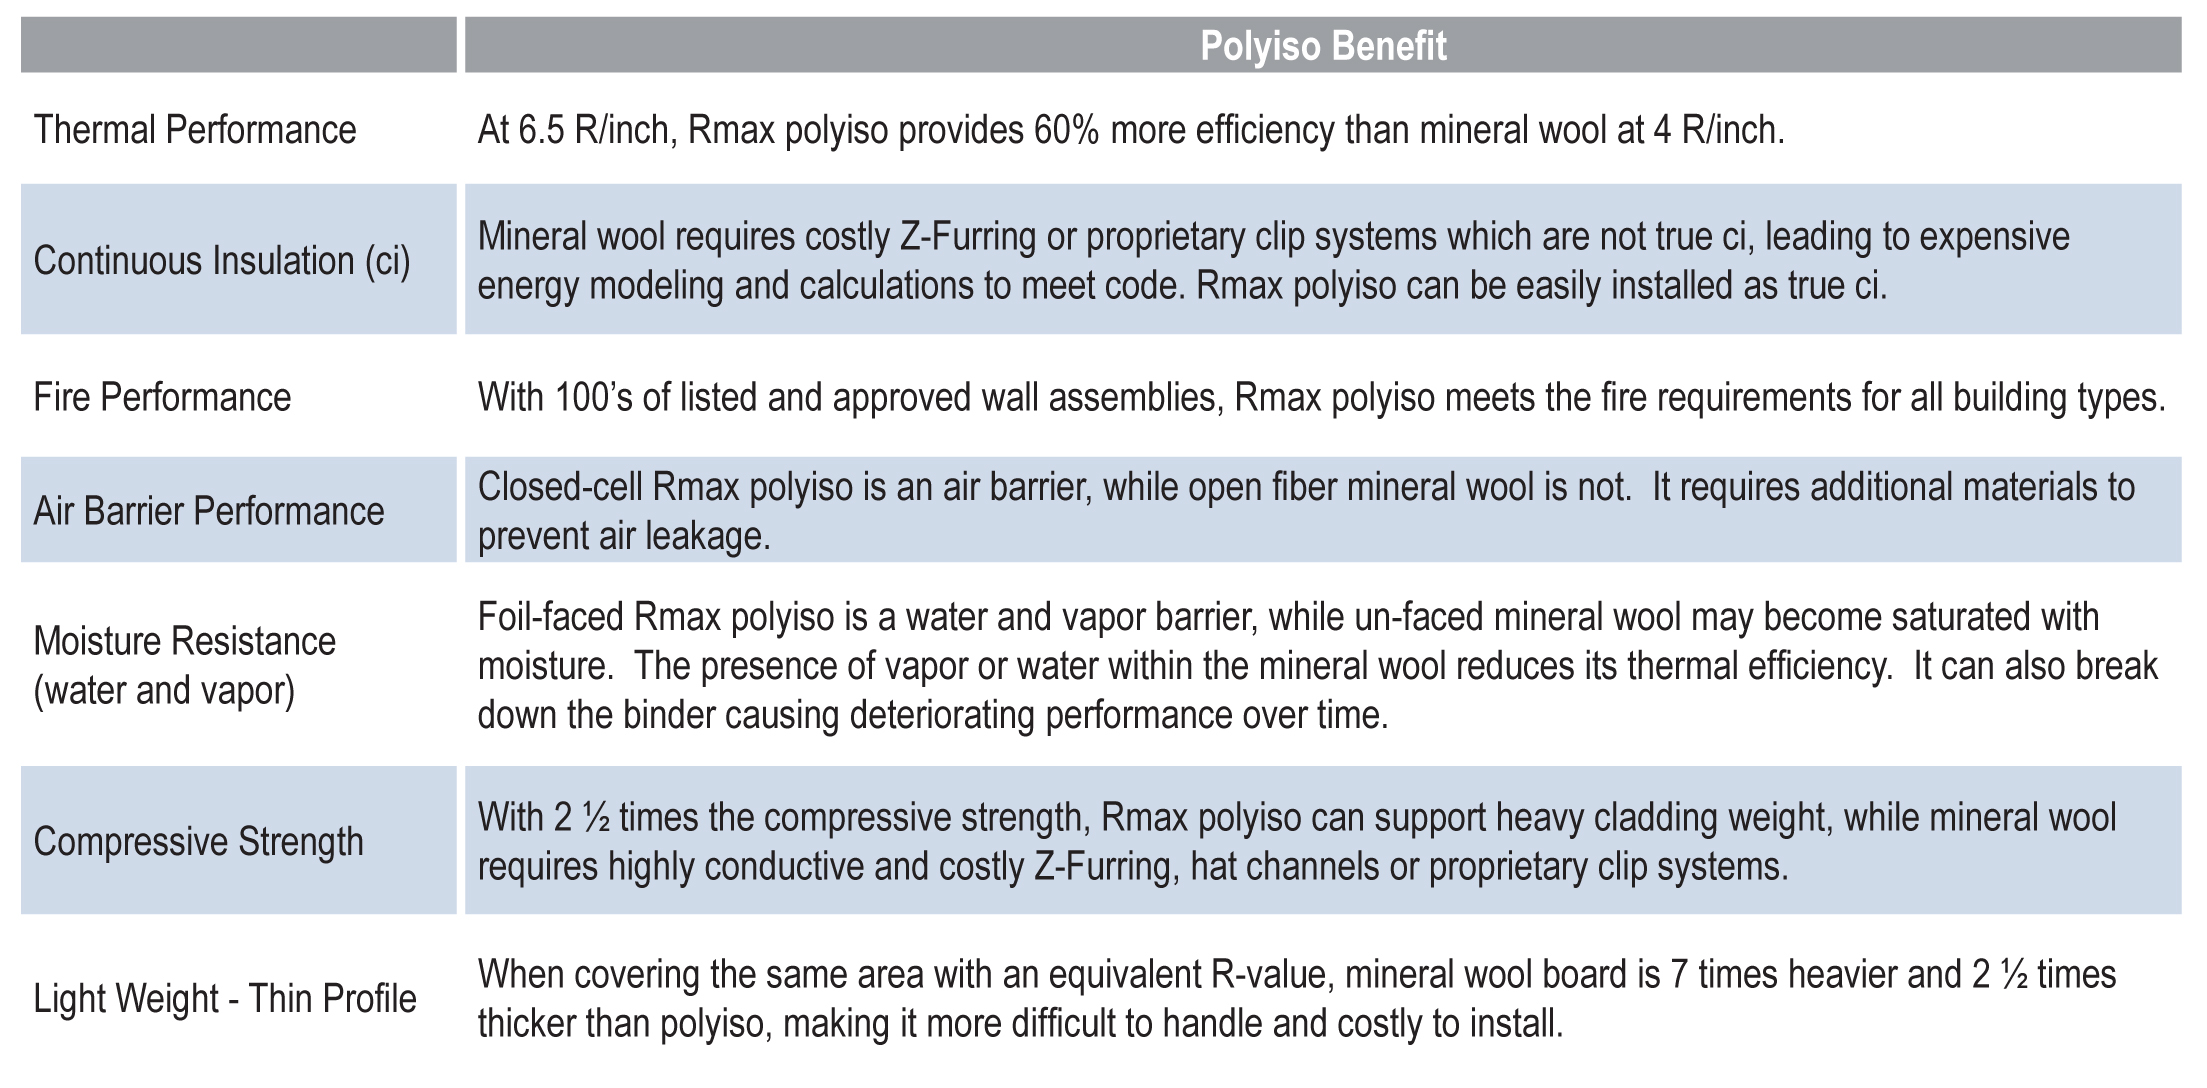 Polyiso Benefits Table.jpg